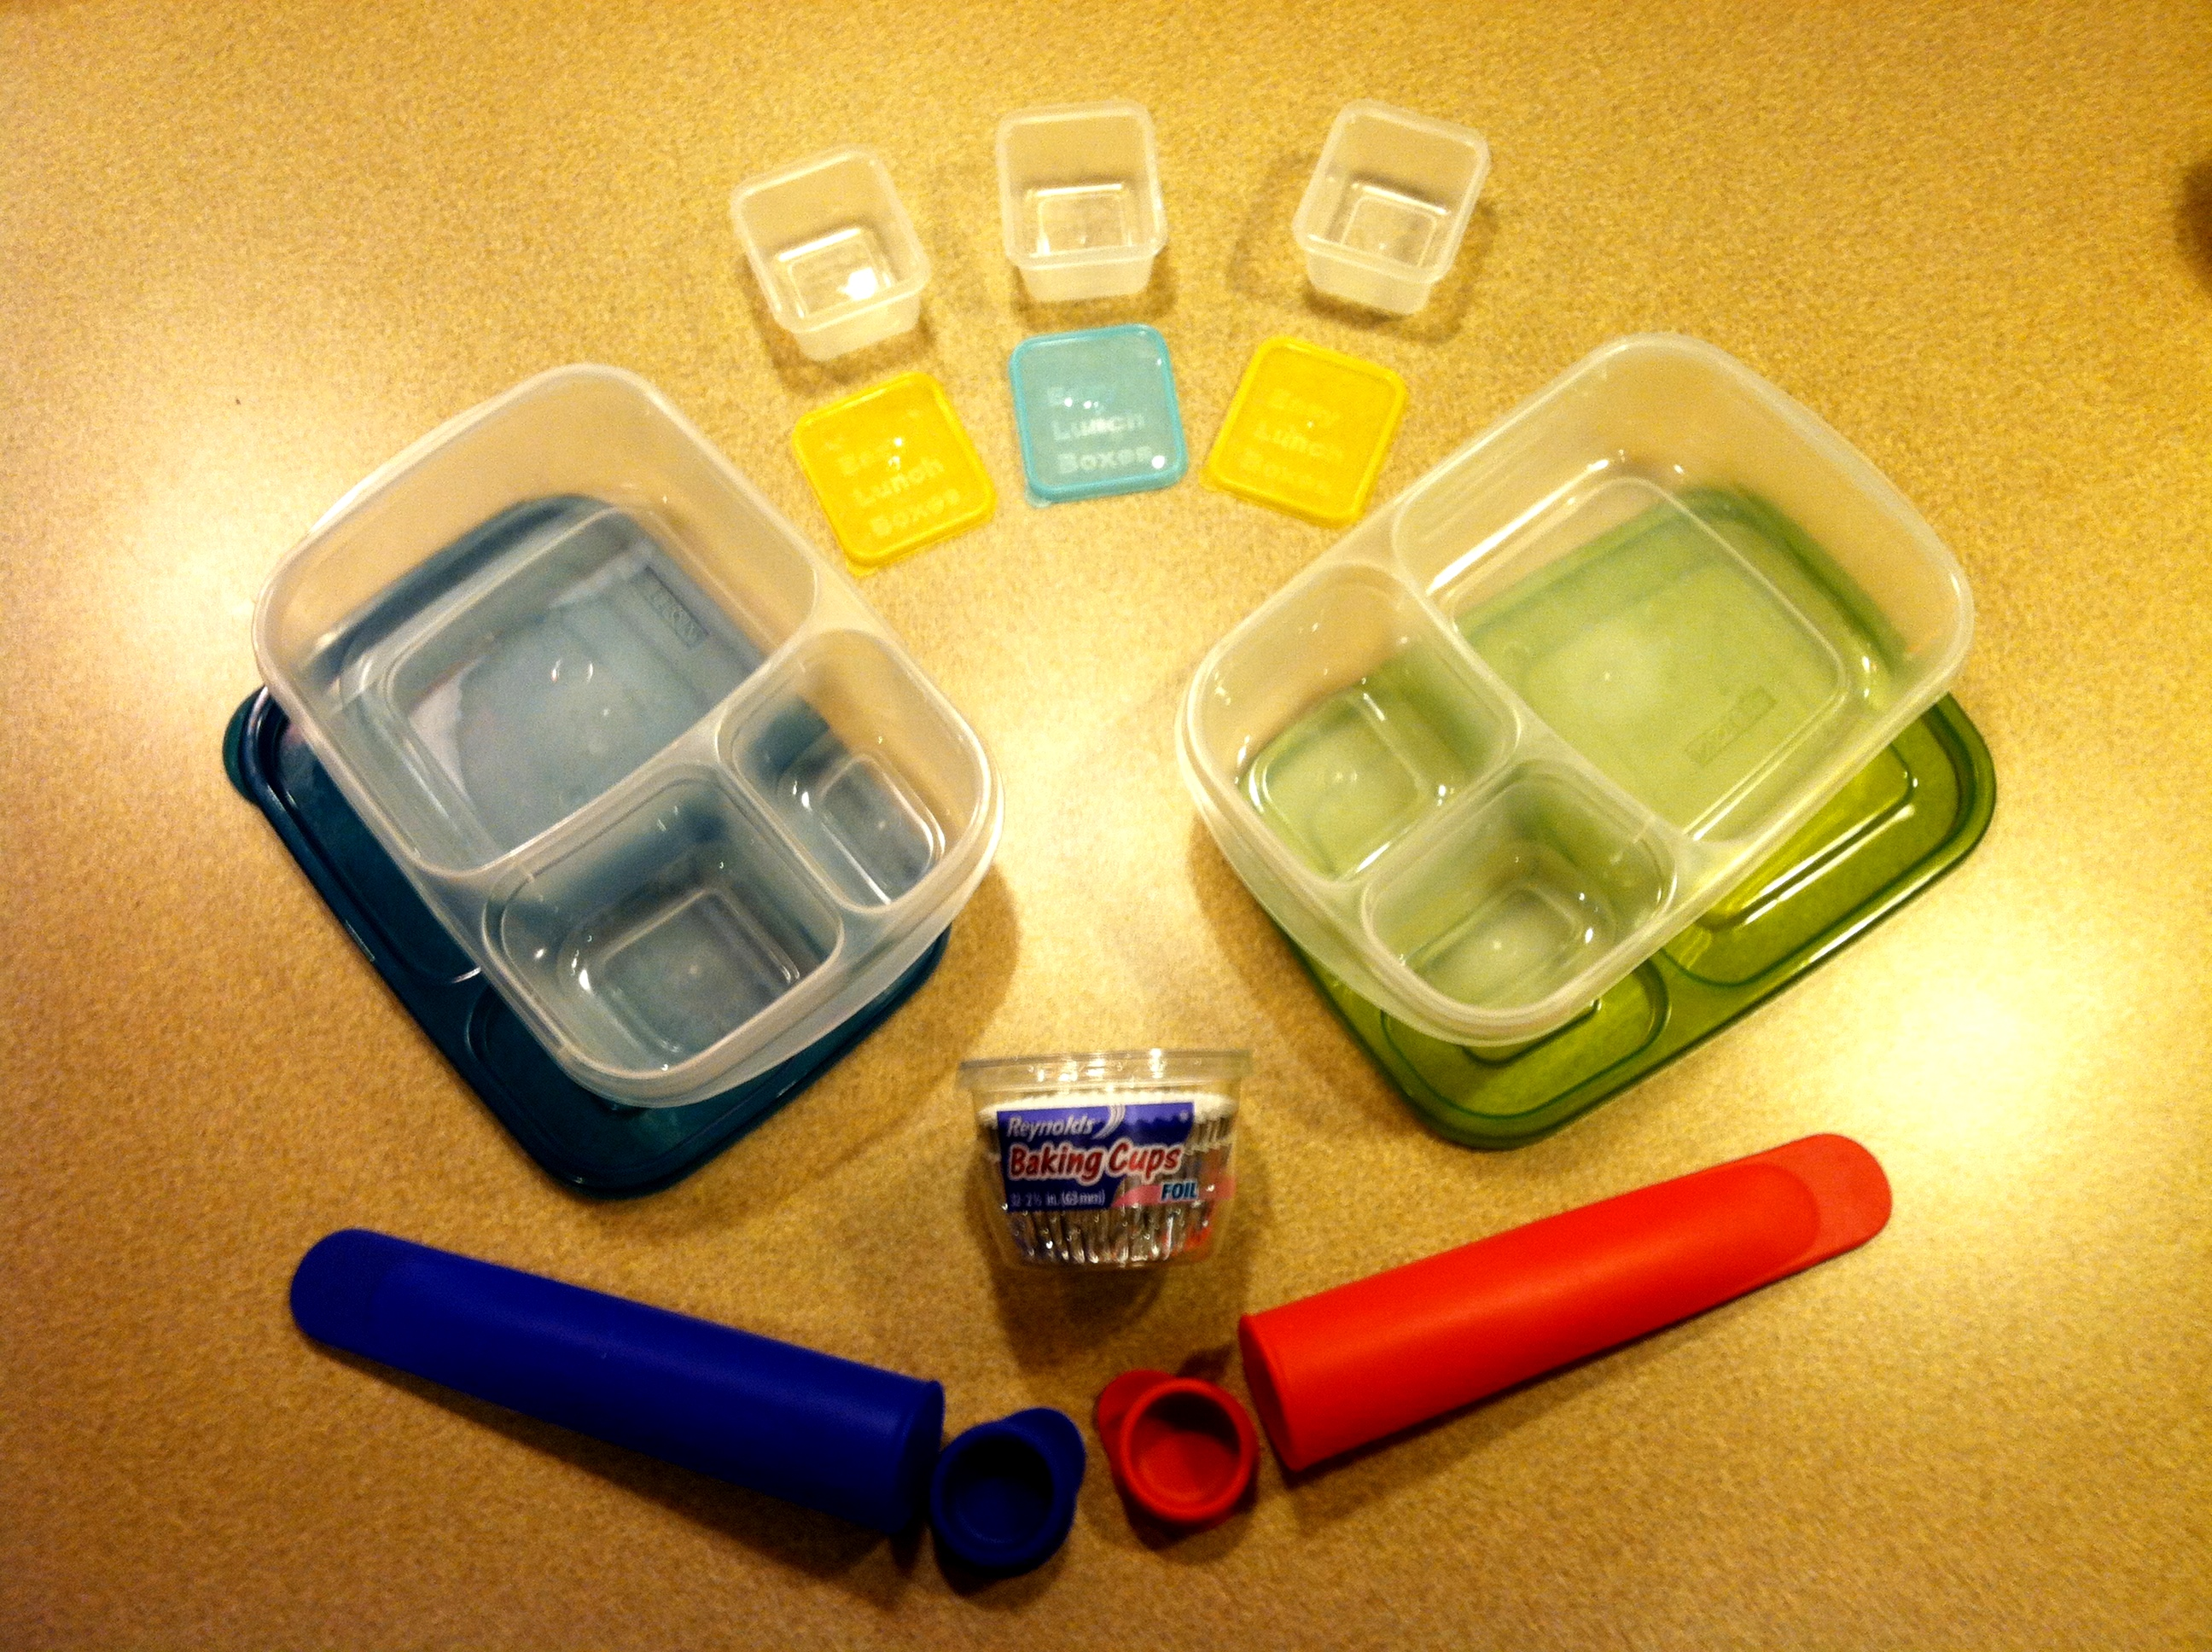 All these items can be found at Amazon.com or EasyLunchBoxes.com. The blue and red cones are silicone tubes with screw caps. We fill them with smoothies, freeze them overnight, and by lunch time, it has thawed out enough to squeeze and enjoy.